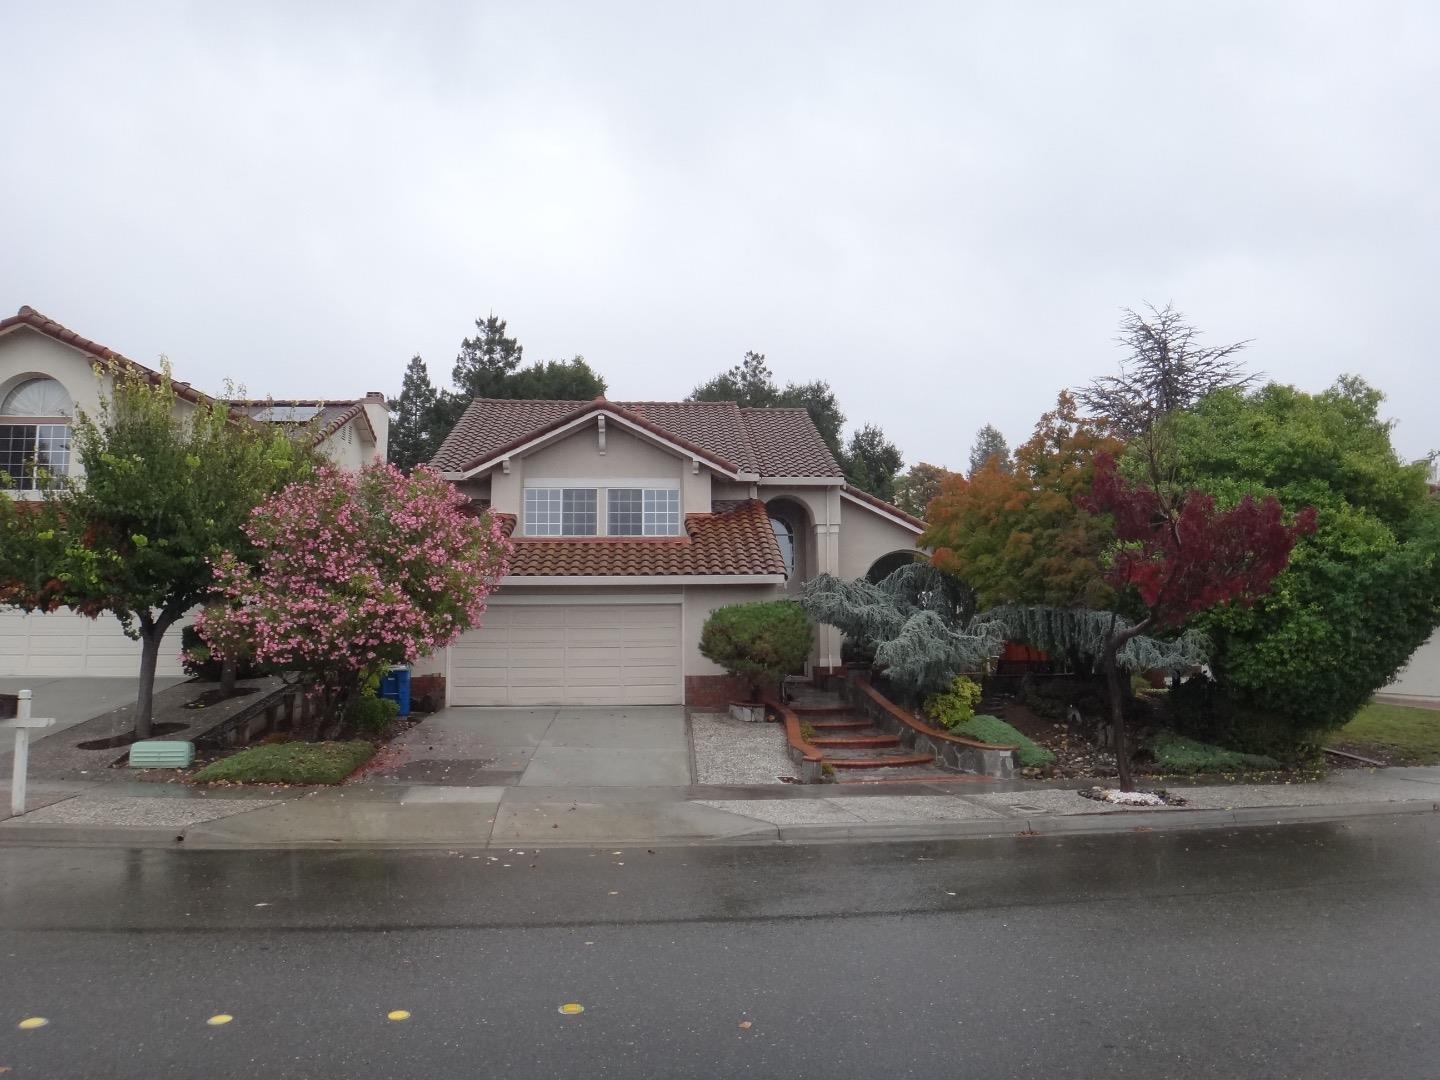 Single Family Home for Sale at 2170 Glenview Drive 2170 Glenview Drive Milpitas, California 95035 United States